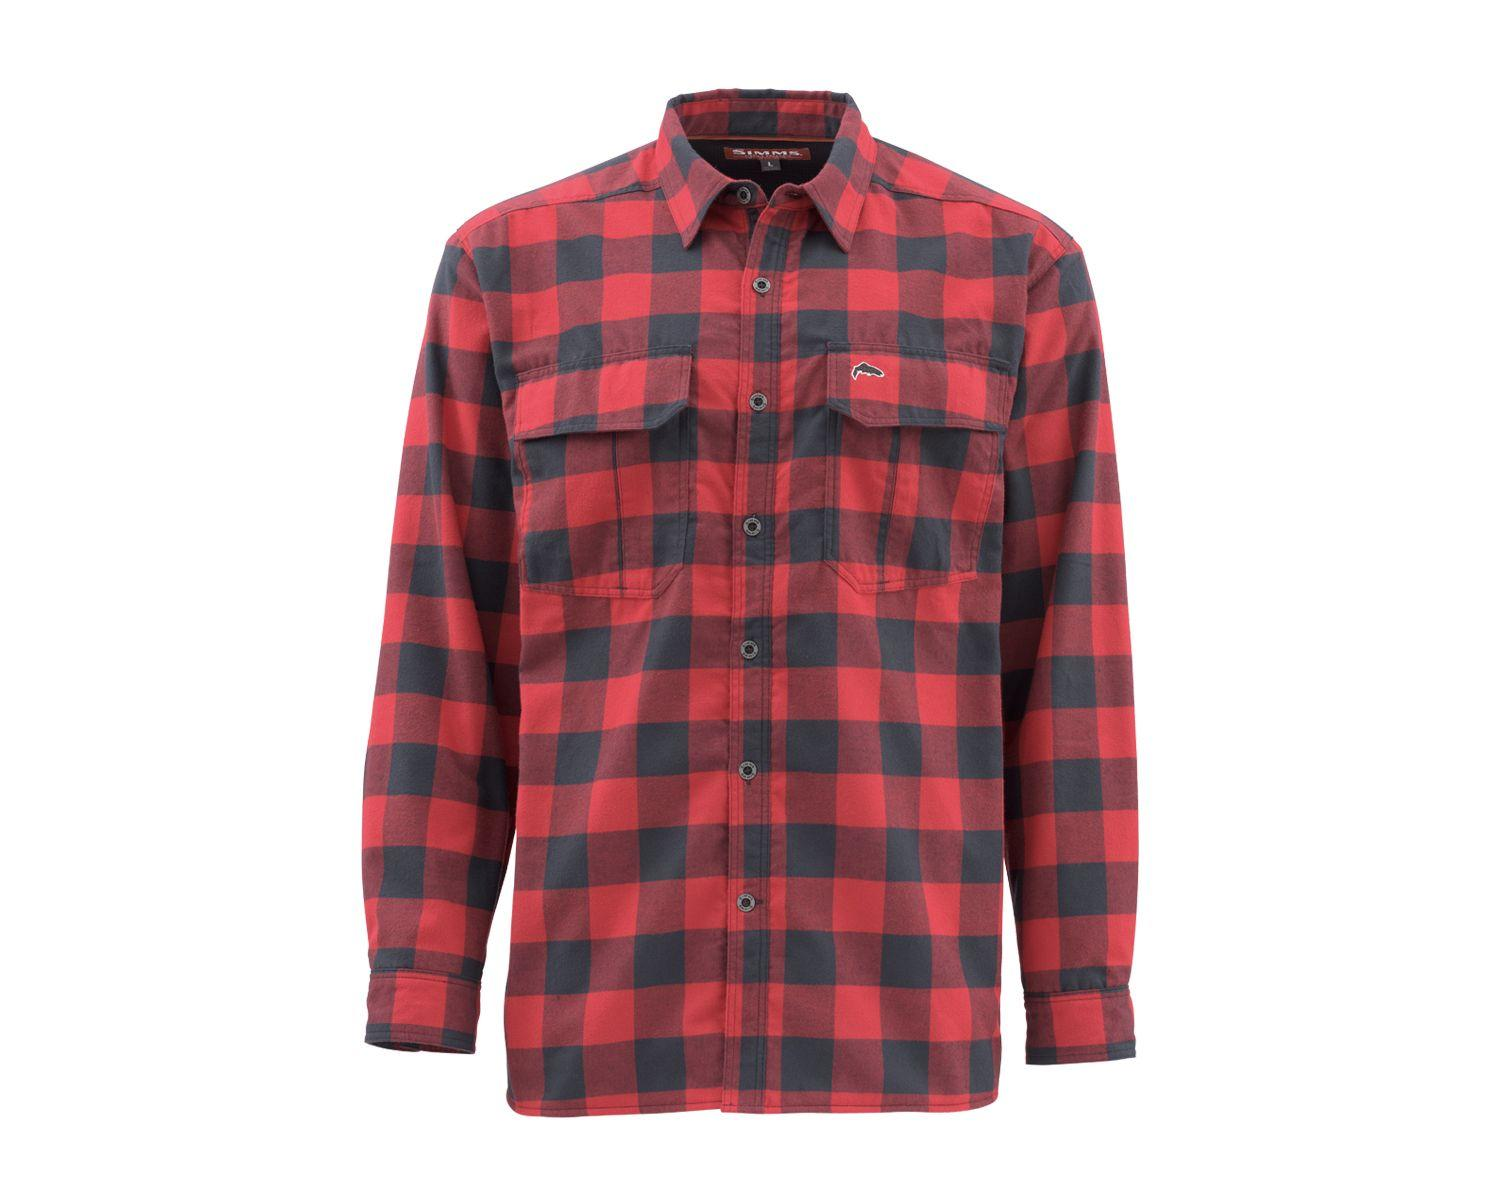 Simms ColdWeather Long Sleeve Shirt - Red Buffalo Plaid_1.jpg